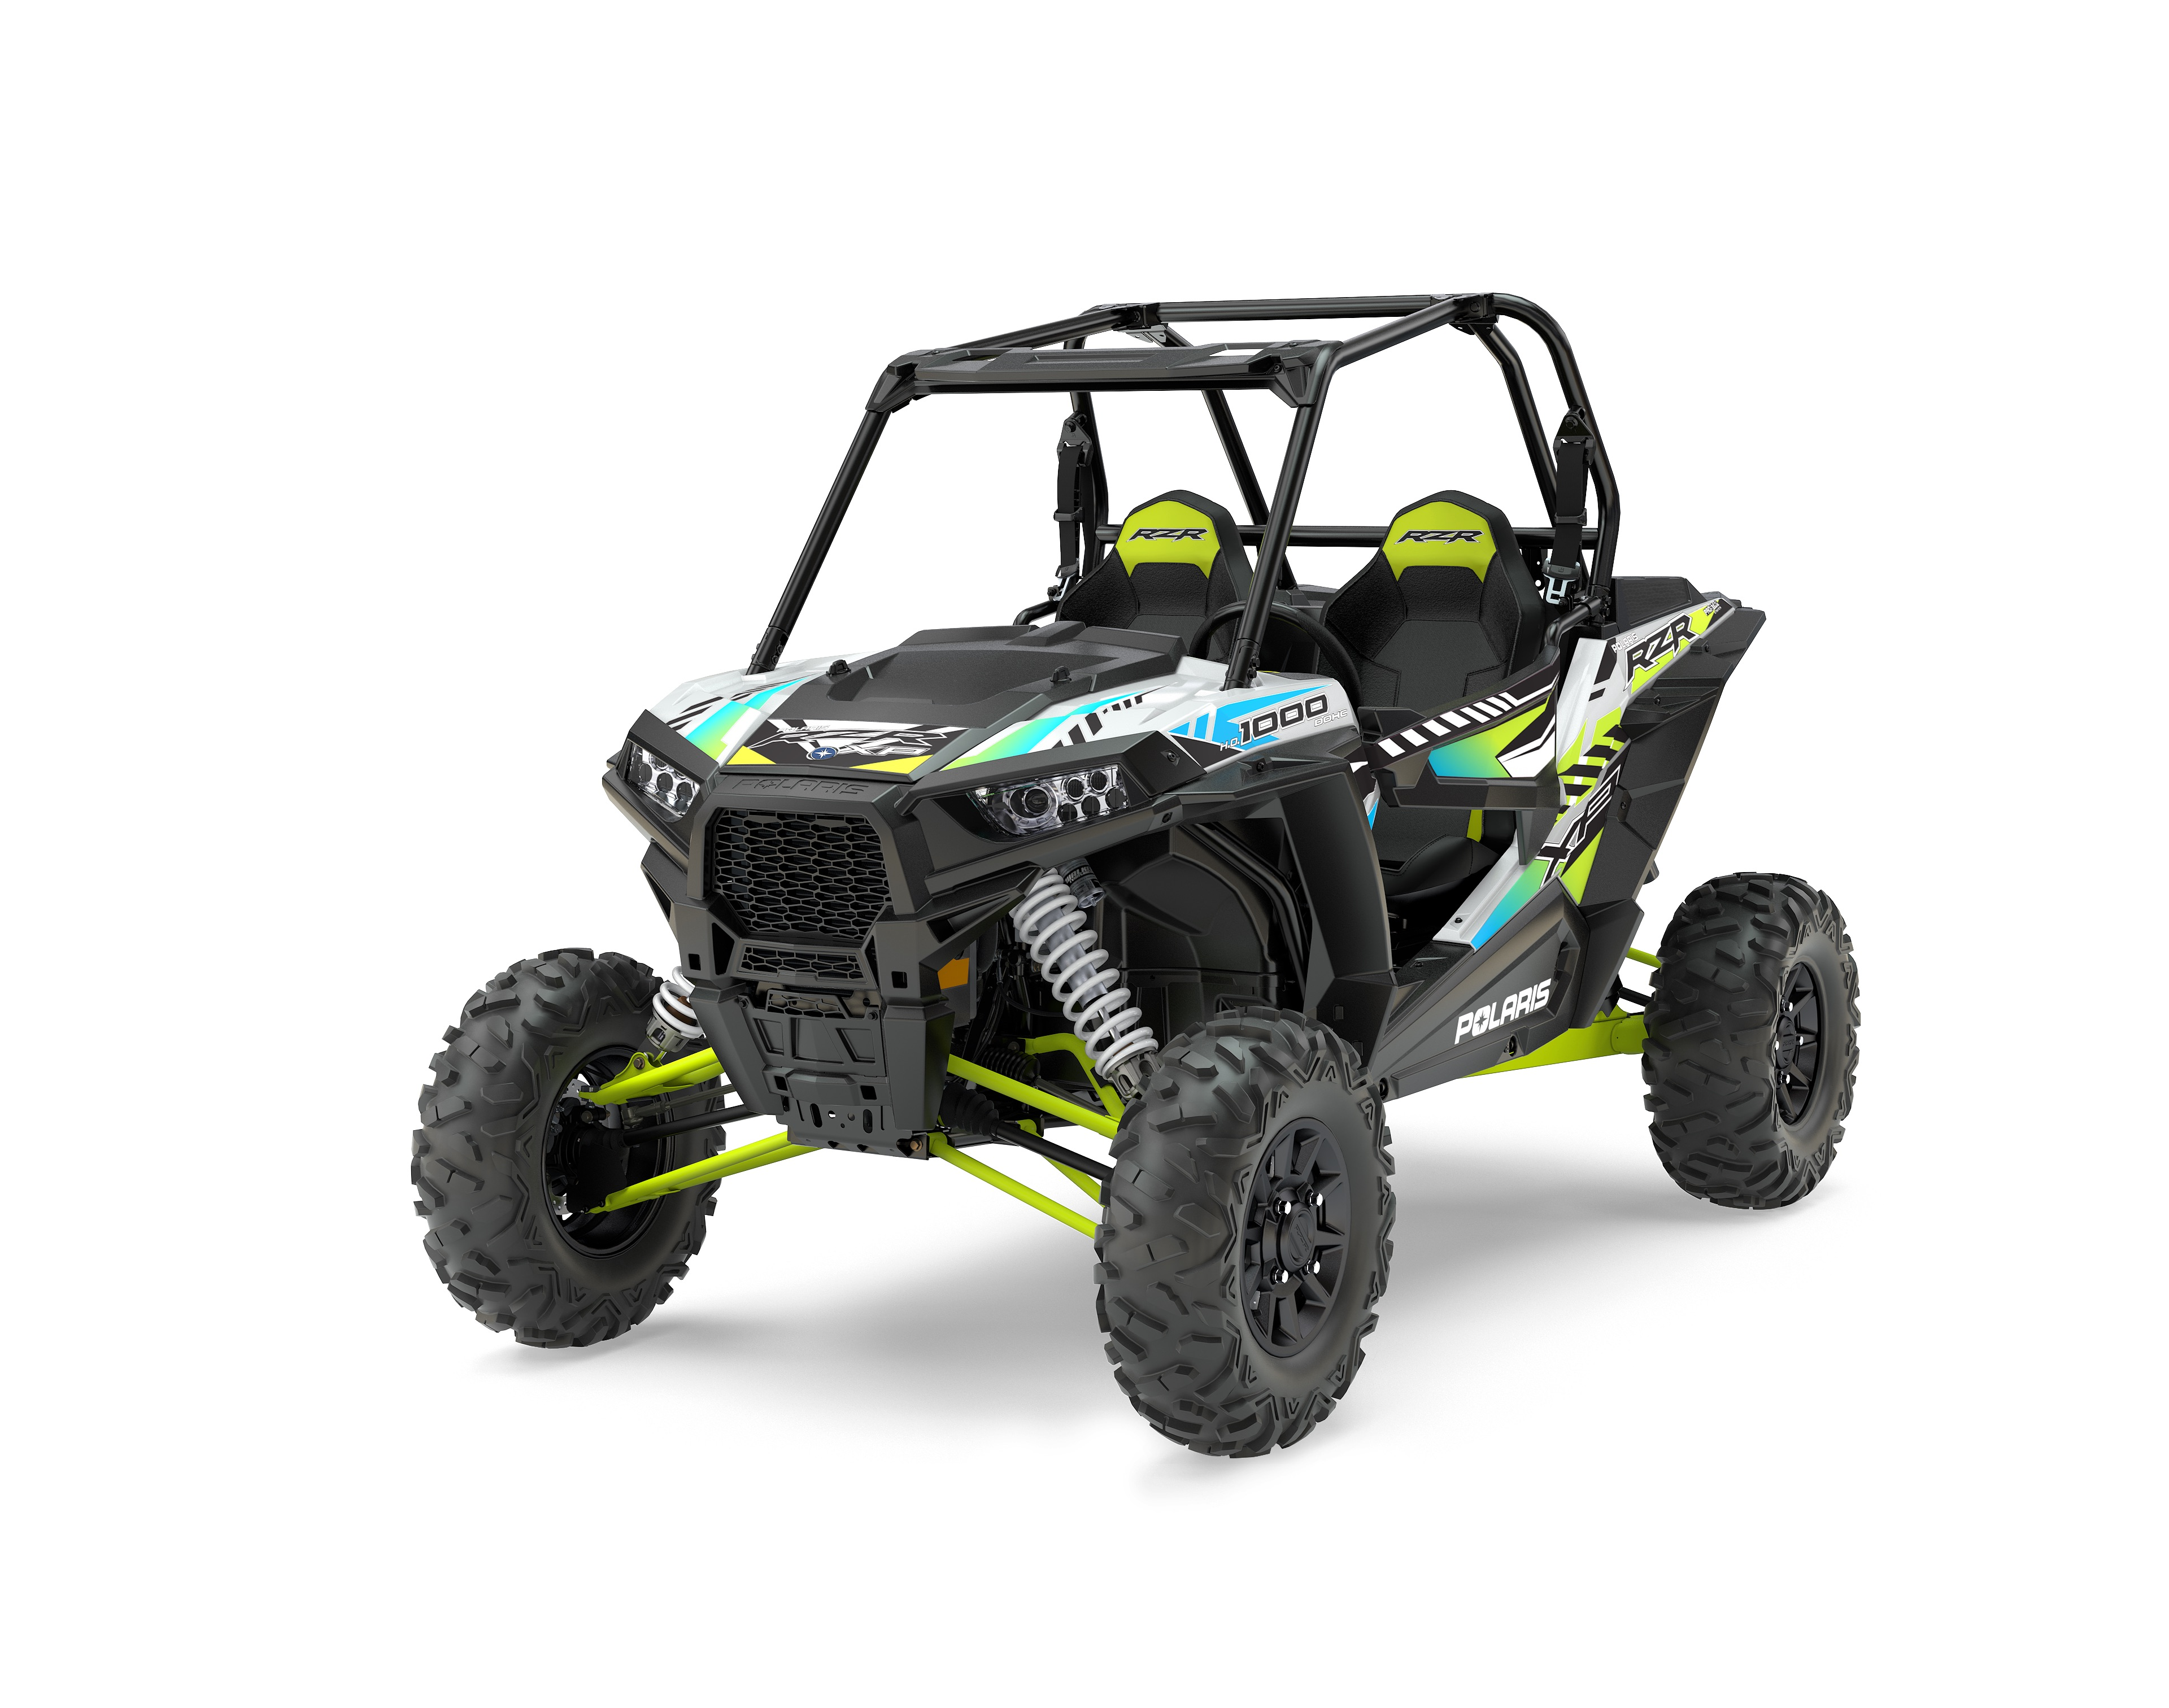 ALL NEW 2017 POLARIS MODELS YOU MUST SEE